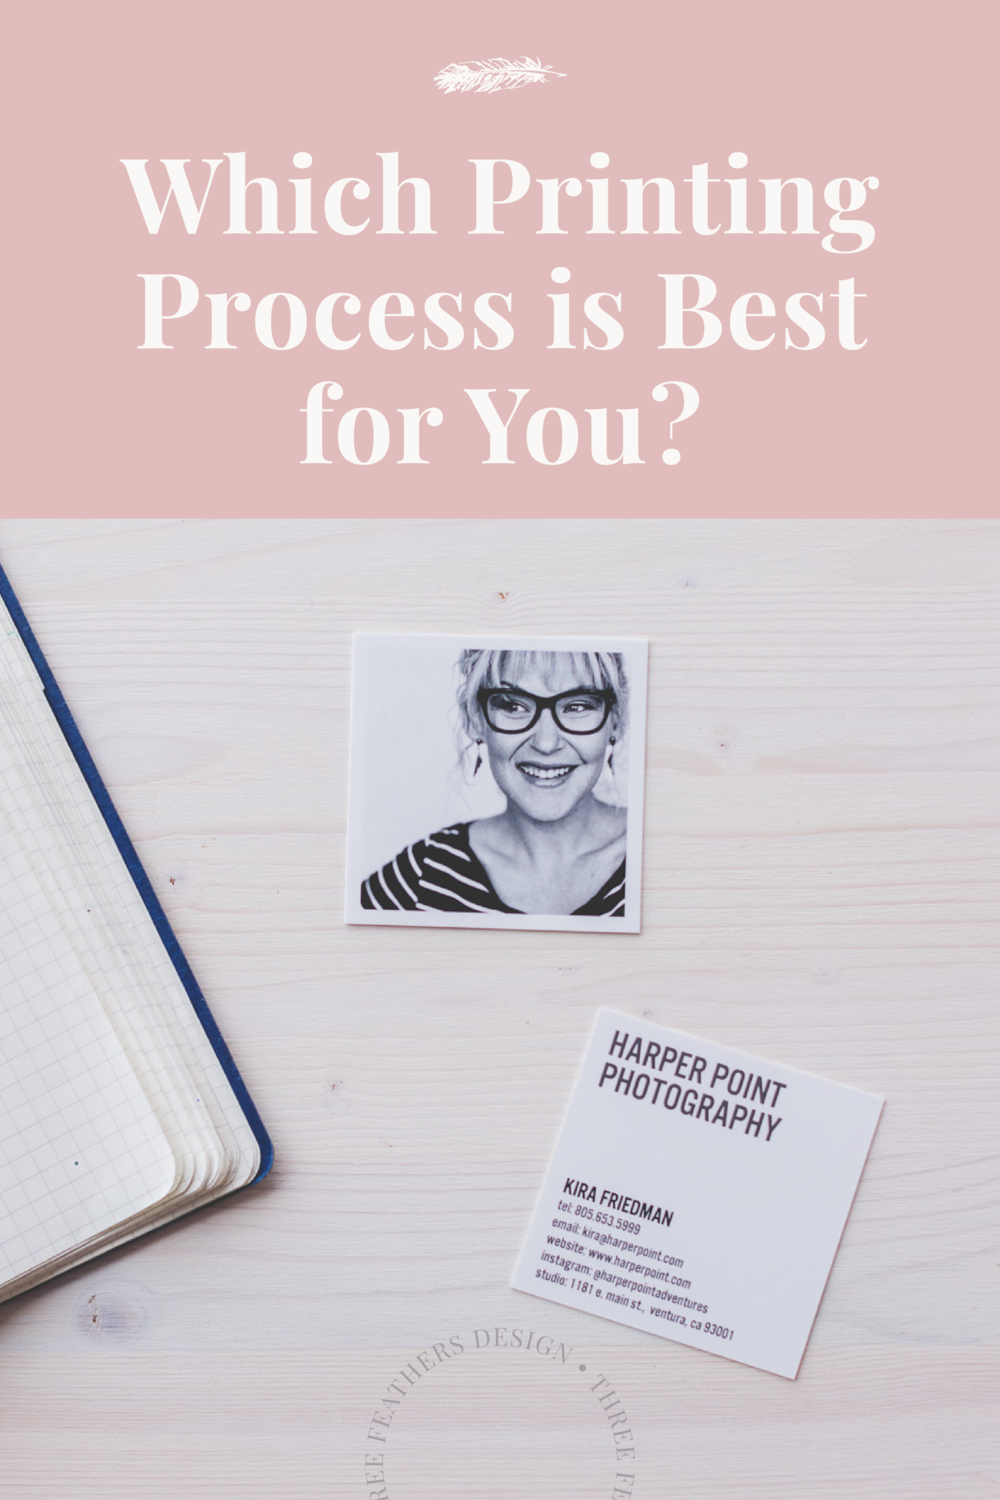 Which Printing Process is Best for You-07.png